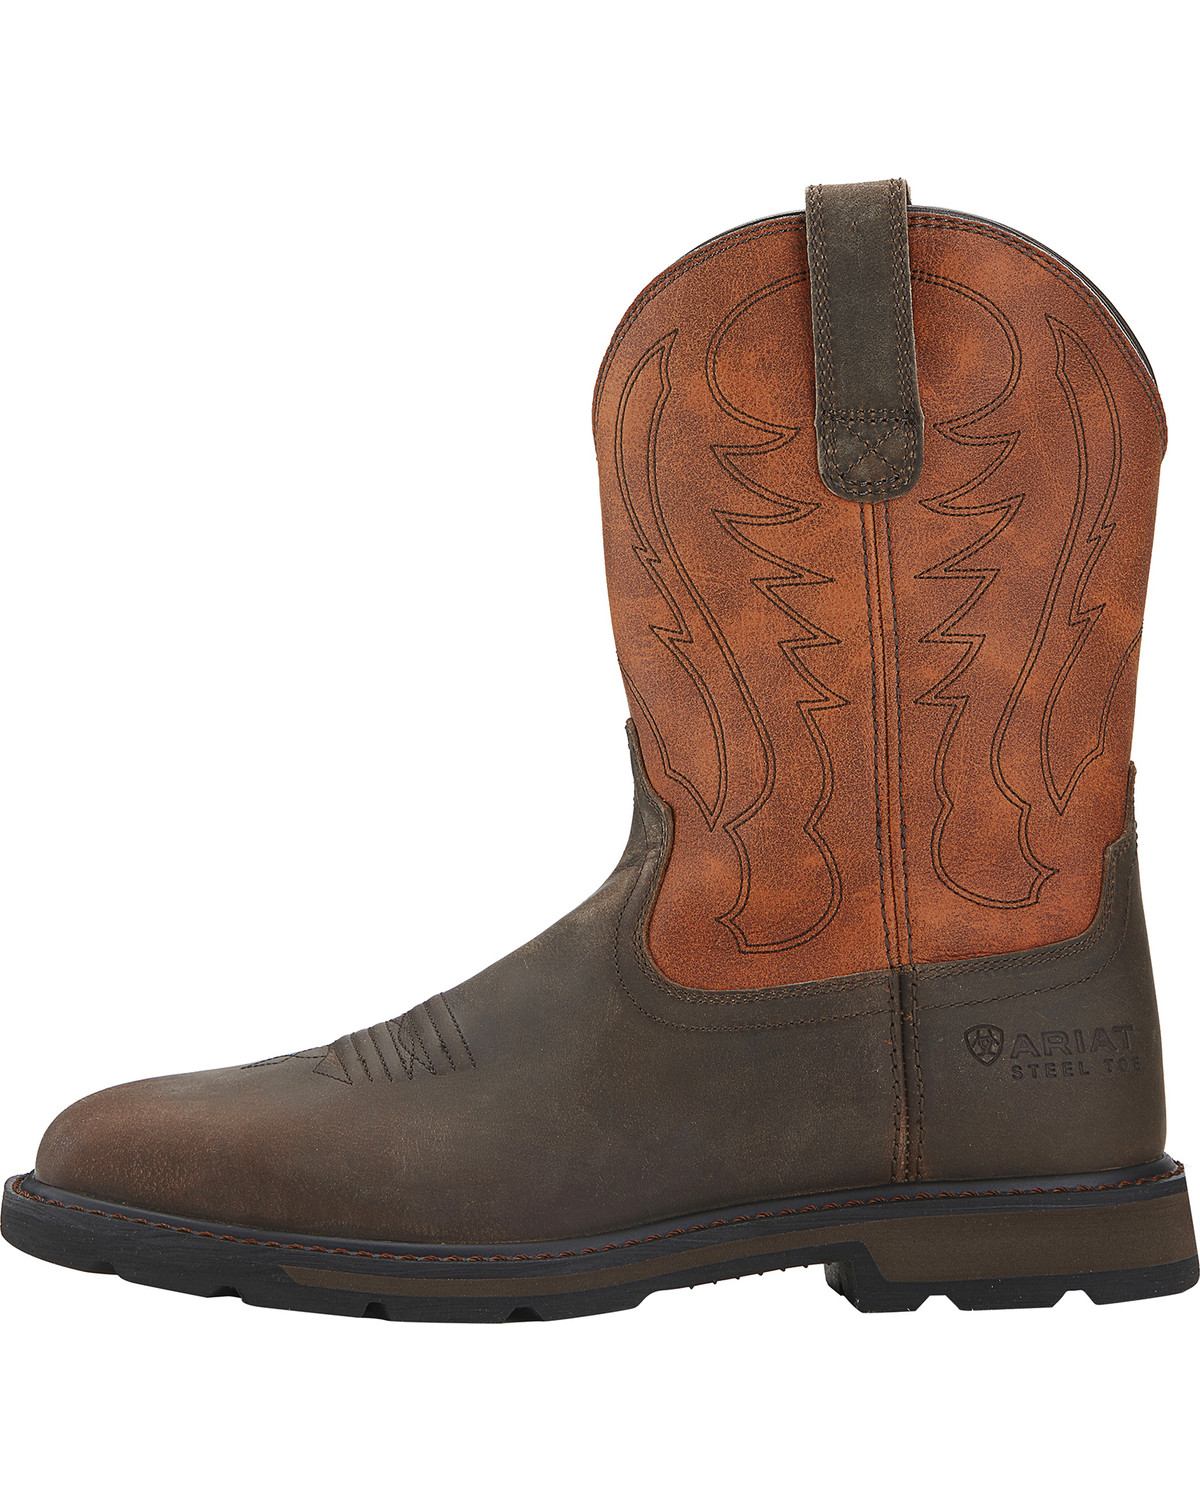 Ariat Men's Groundbreaker Steel Toe Western Work Boots